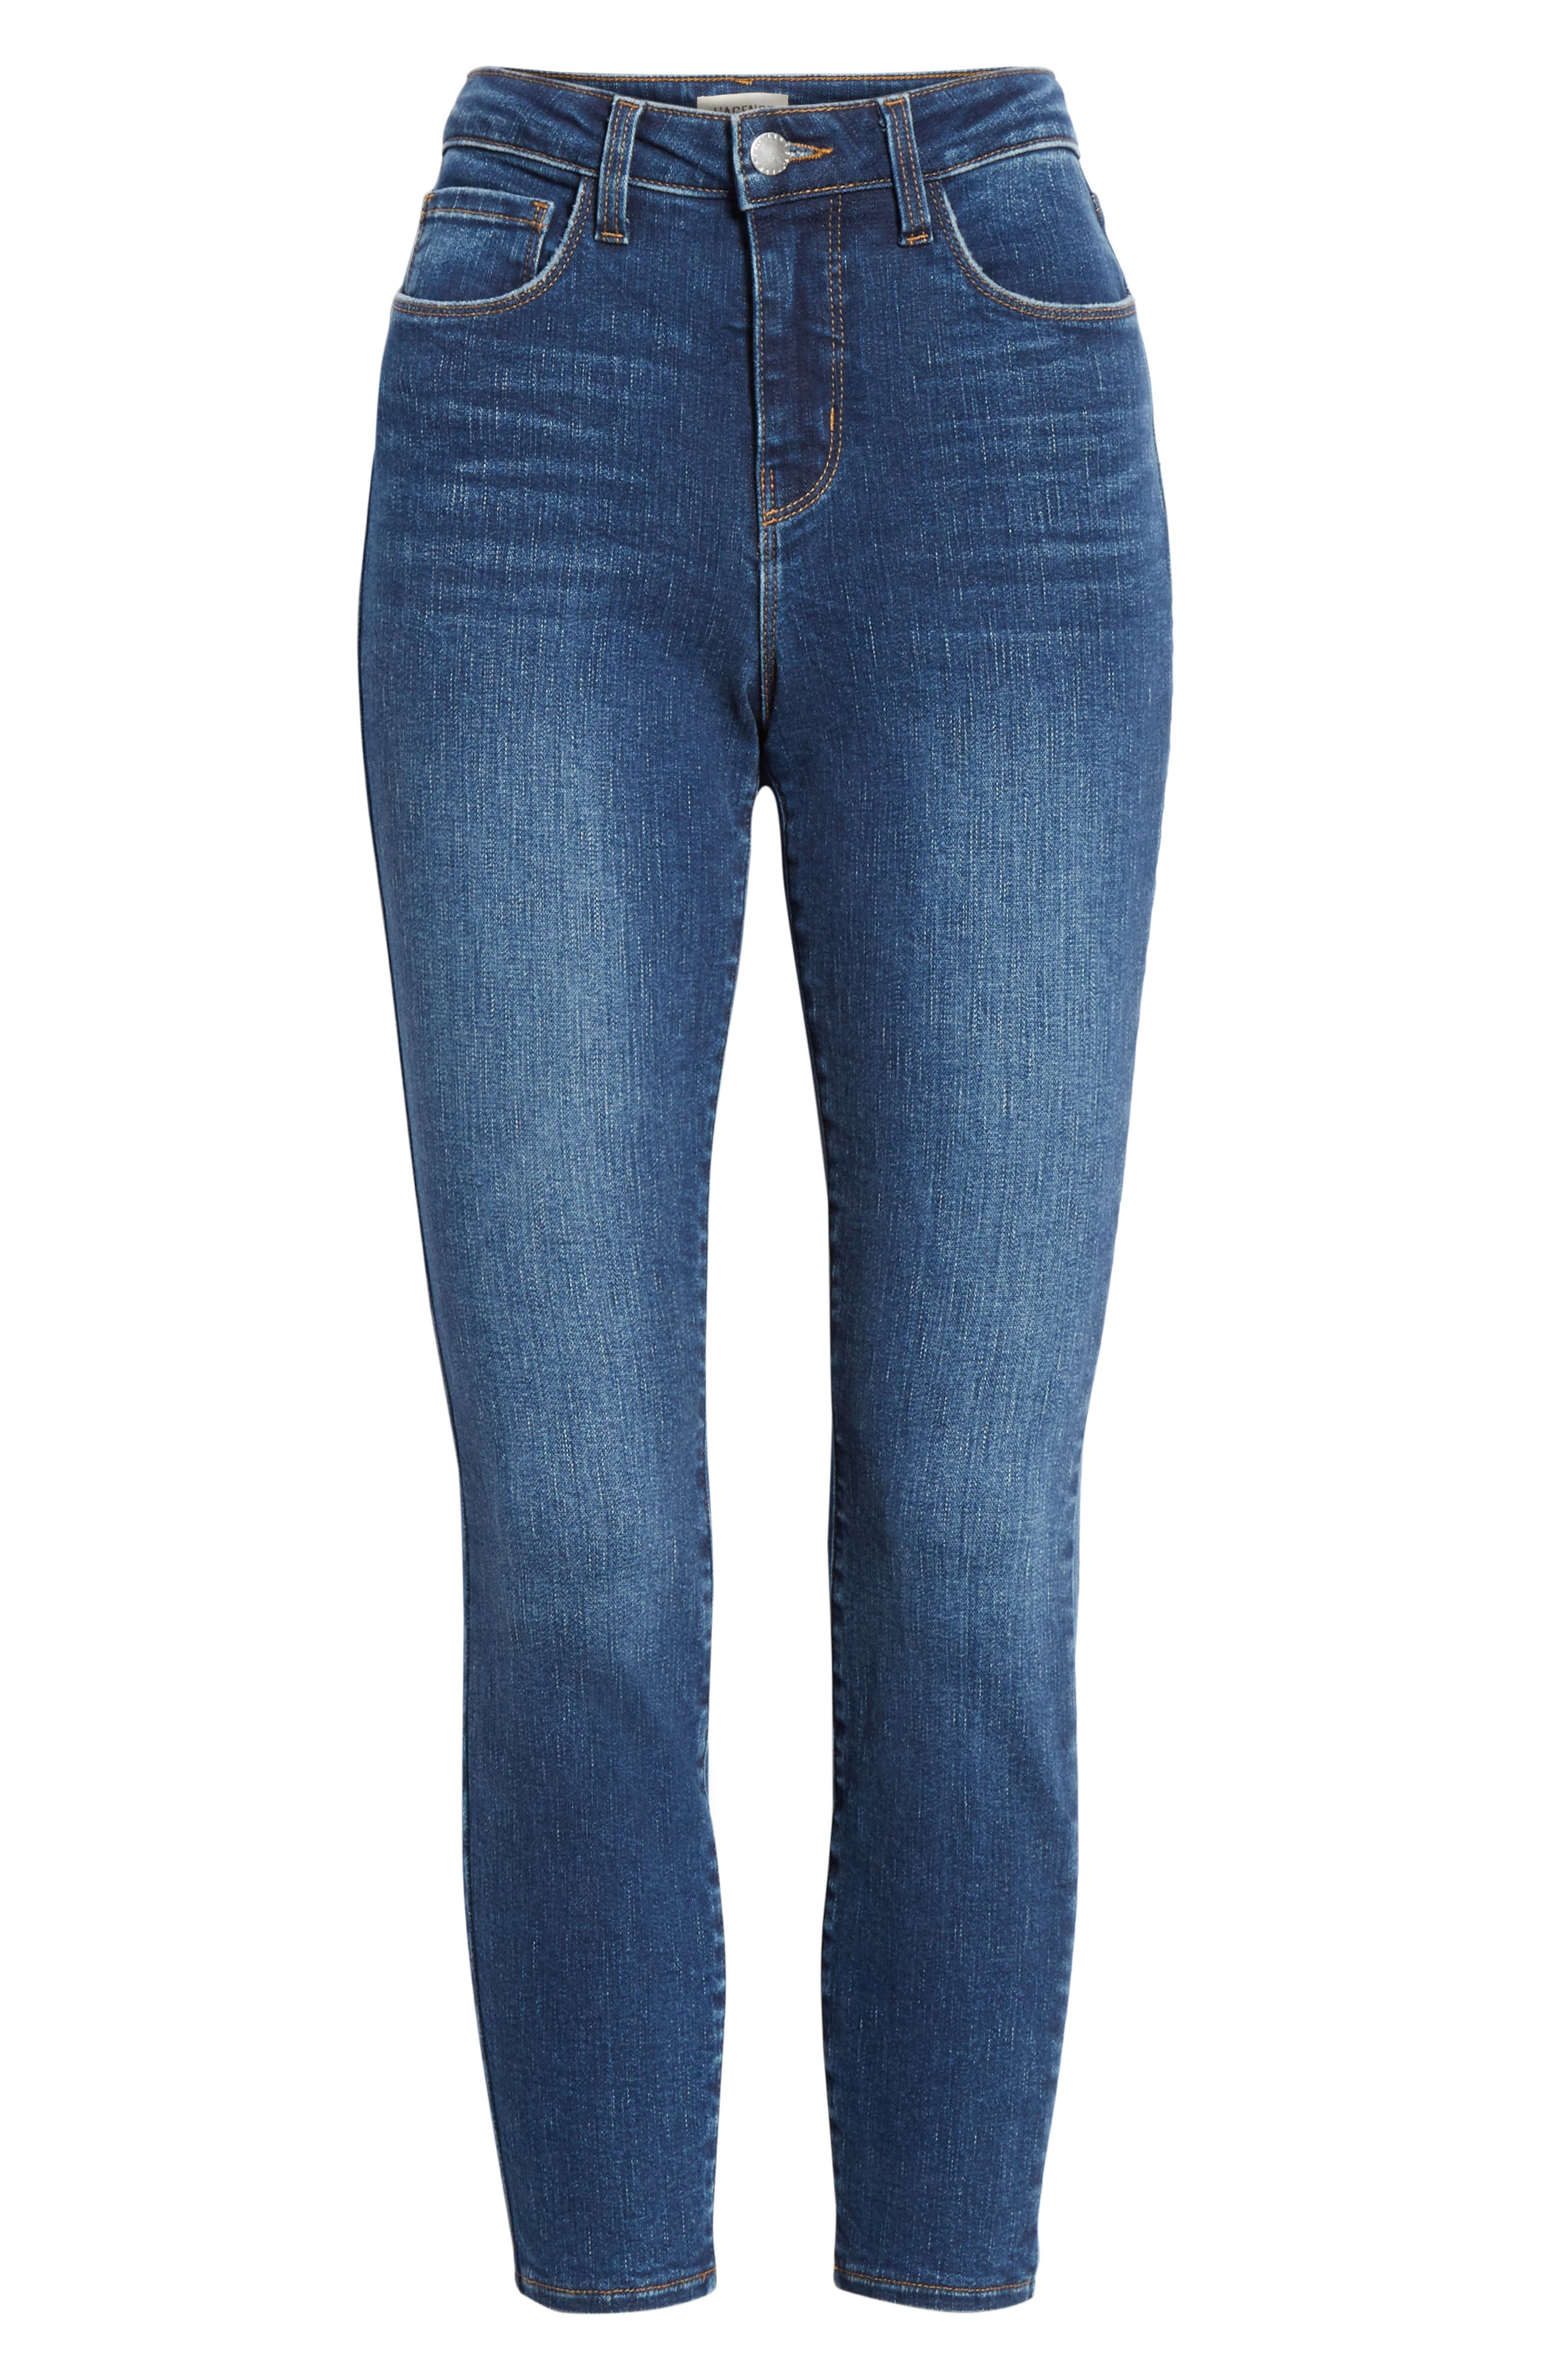 L'AGENCE, Margot Crop Skinny Jeans, Alternate thumbnail 7, color, TUSCAN